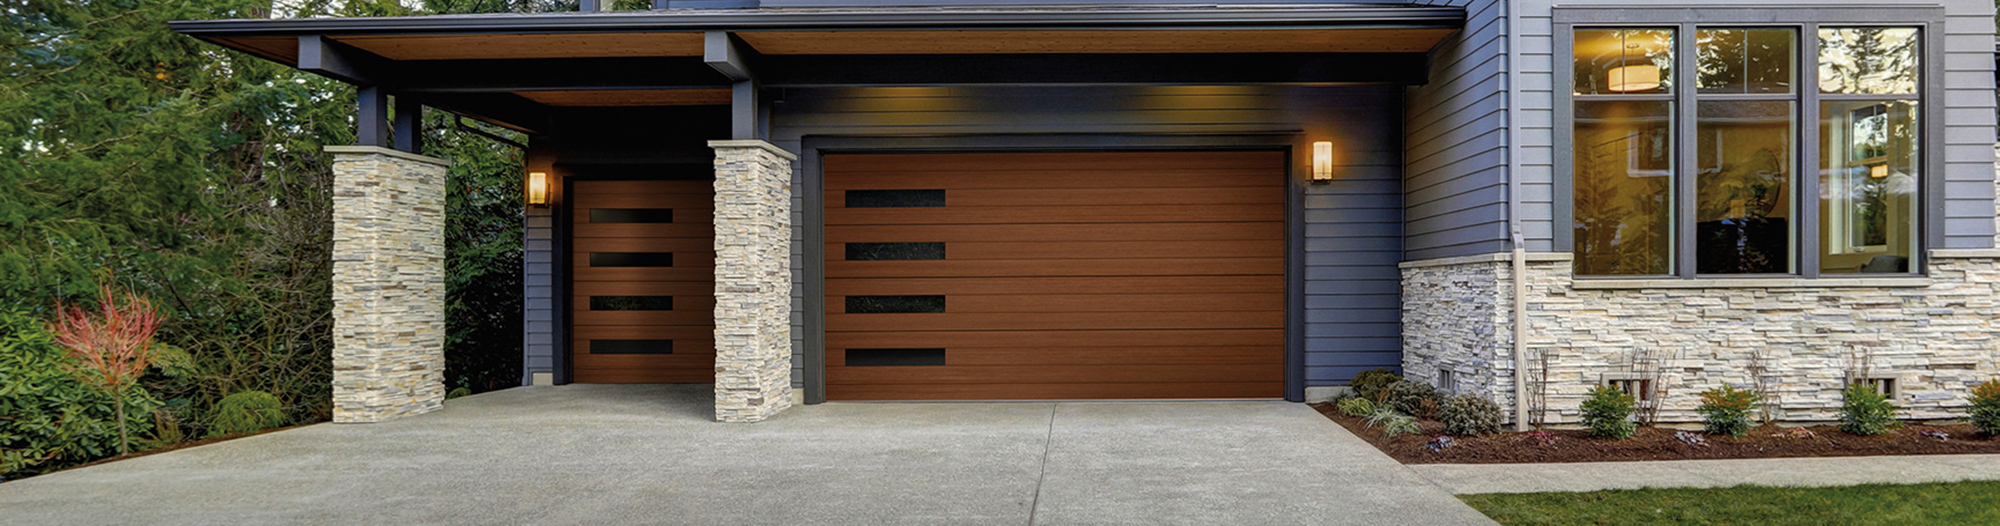 If Youu0027re Looking For A Beautiful Faux Wood Garage Door That Complements  Your Mid Century Or Modern Home Style, Then Youu0027ll Love The Canyon Ridge®  Modern ...